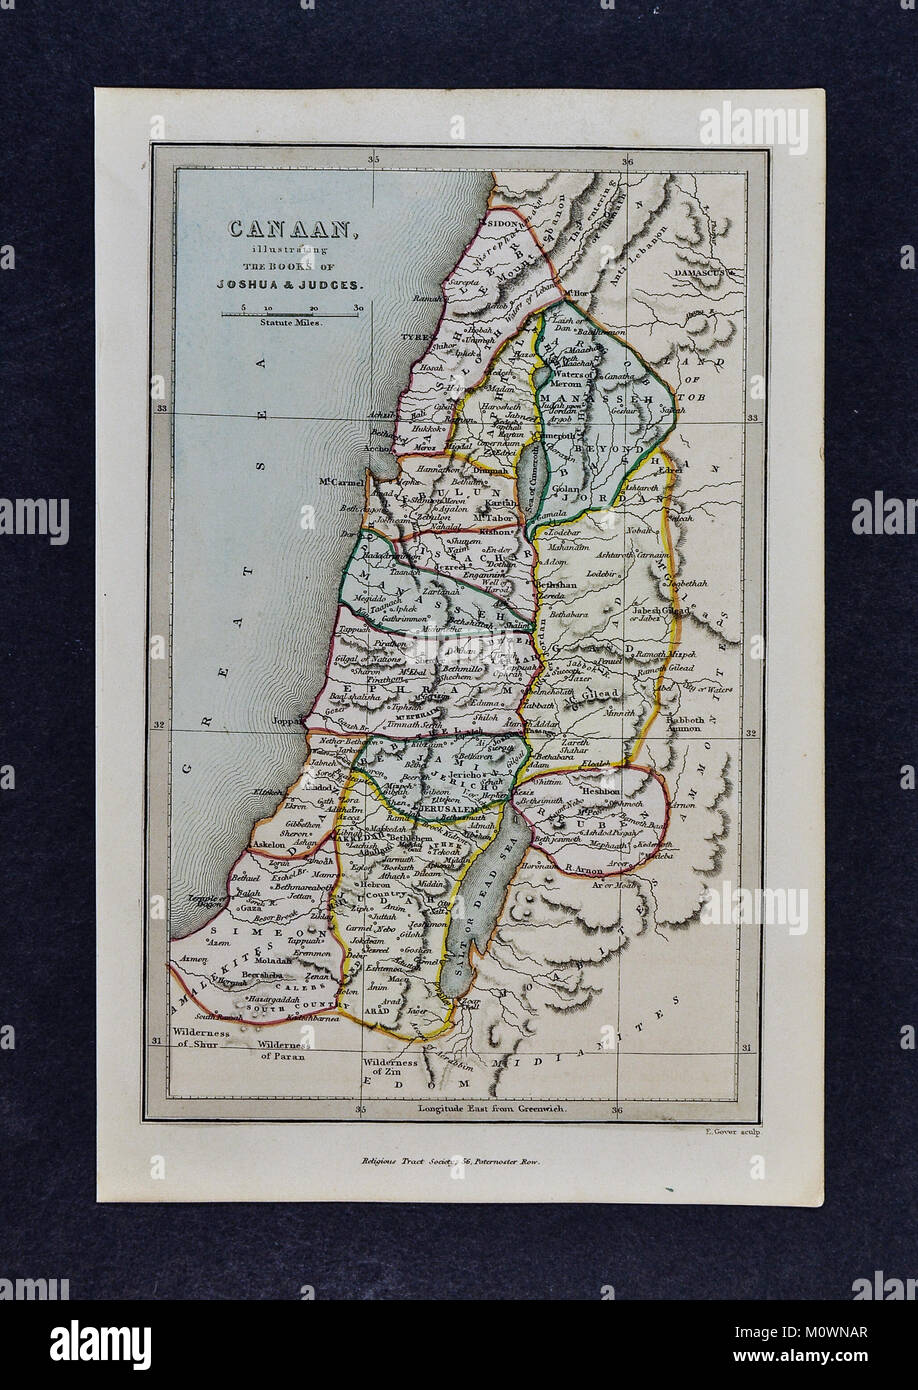 1799 Bible Tract Society Map - Canaan illustrating the Book of Joshua & Judges - Jerusalem Israel Old Testament - Stock Image